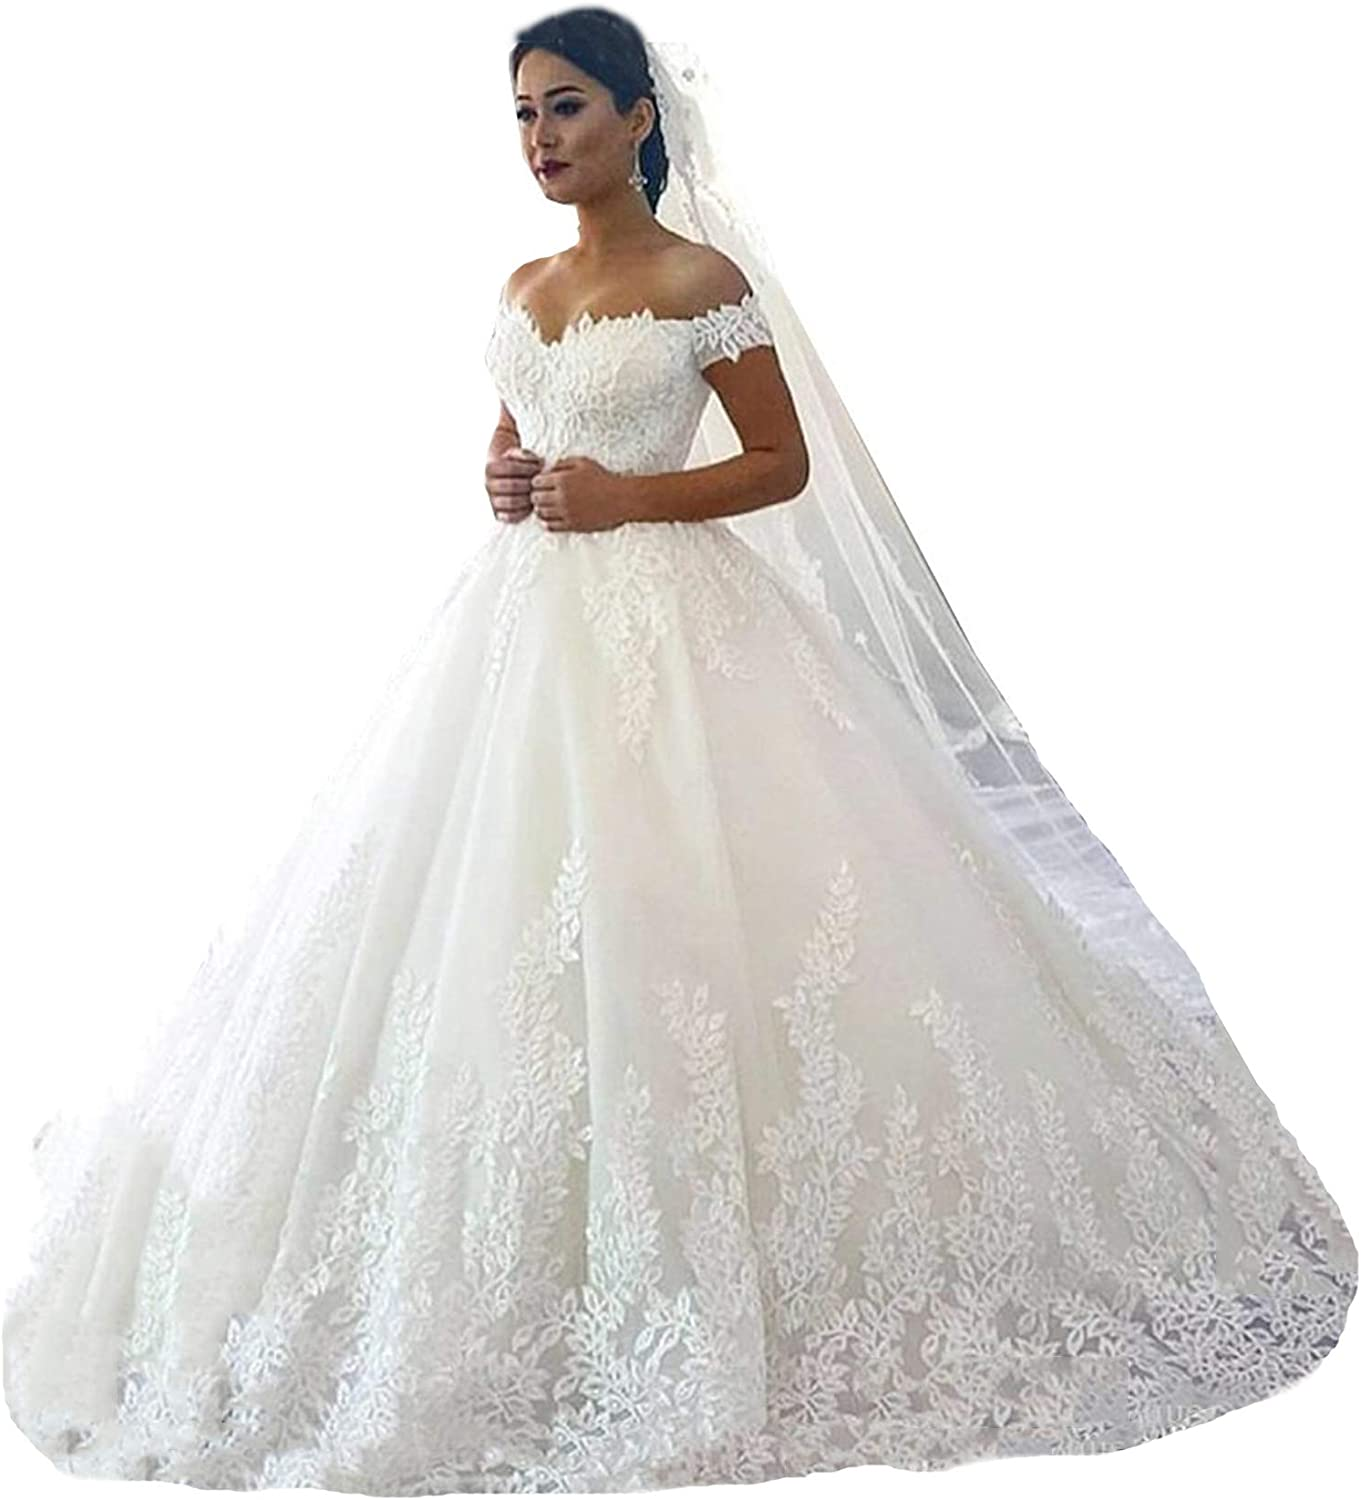 Fanciest Women's Lace Wedding Dresses for Bride 20 Ball Gowns White